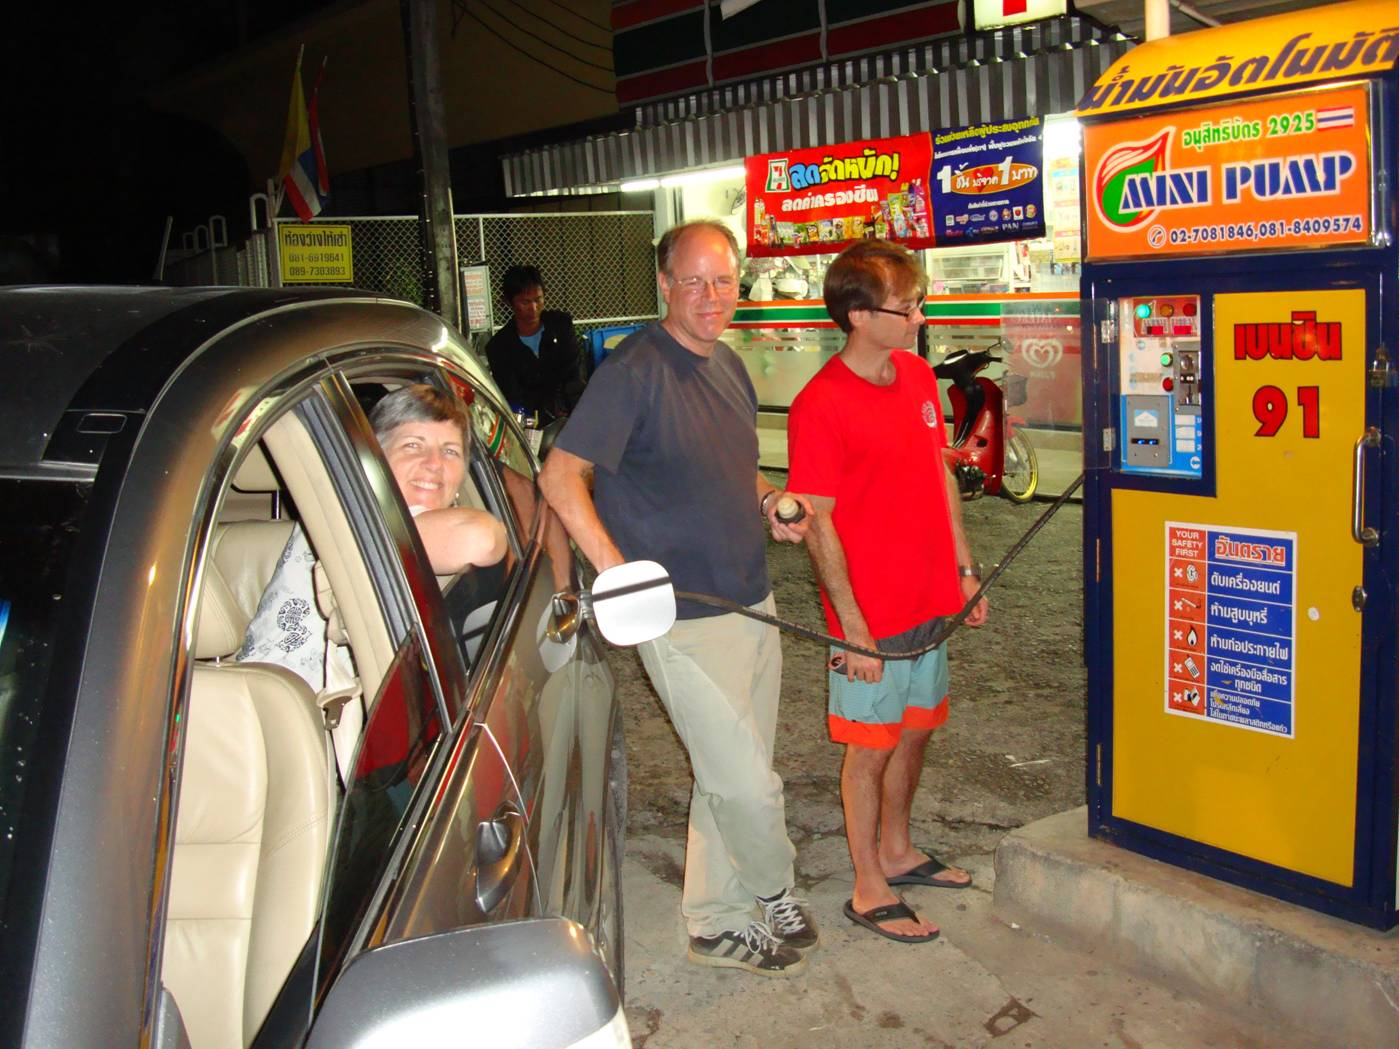 Picture:  Gassing up took a while, but we weren't in a hurry.  Phuket Island, Thailand